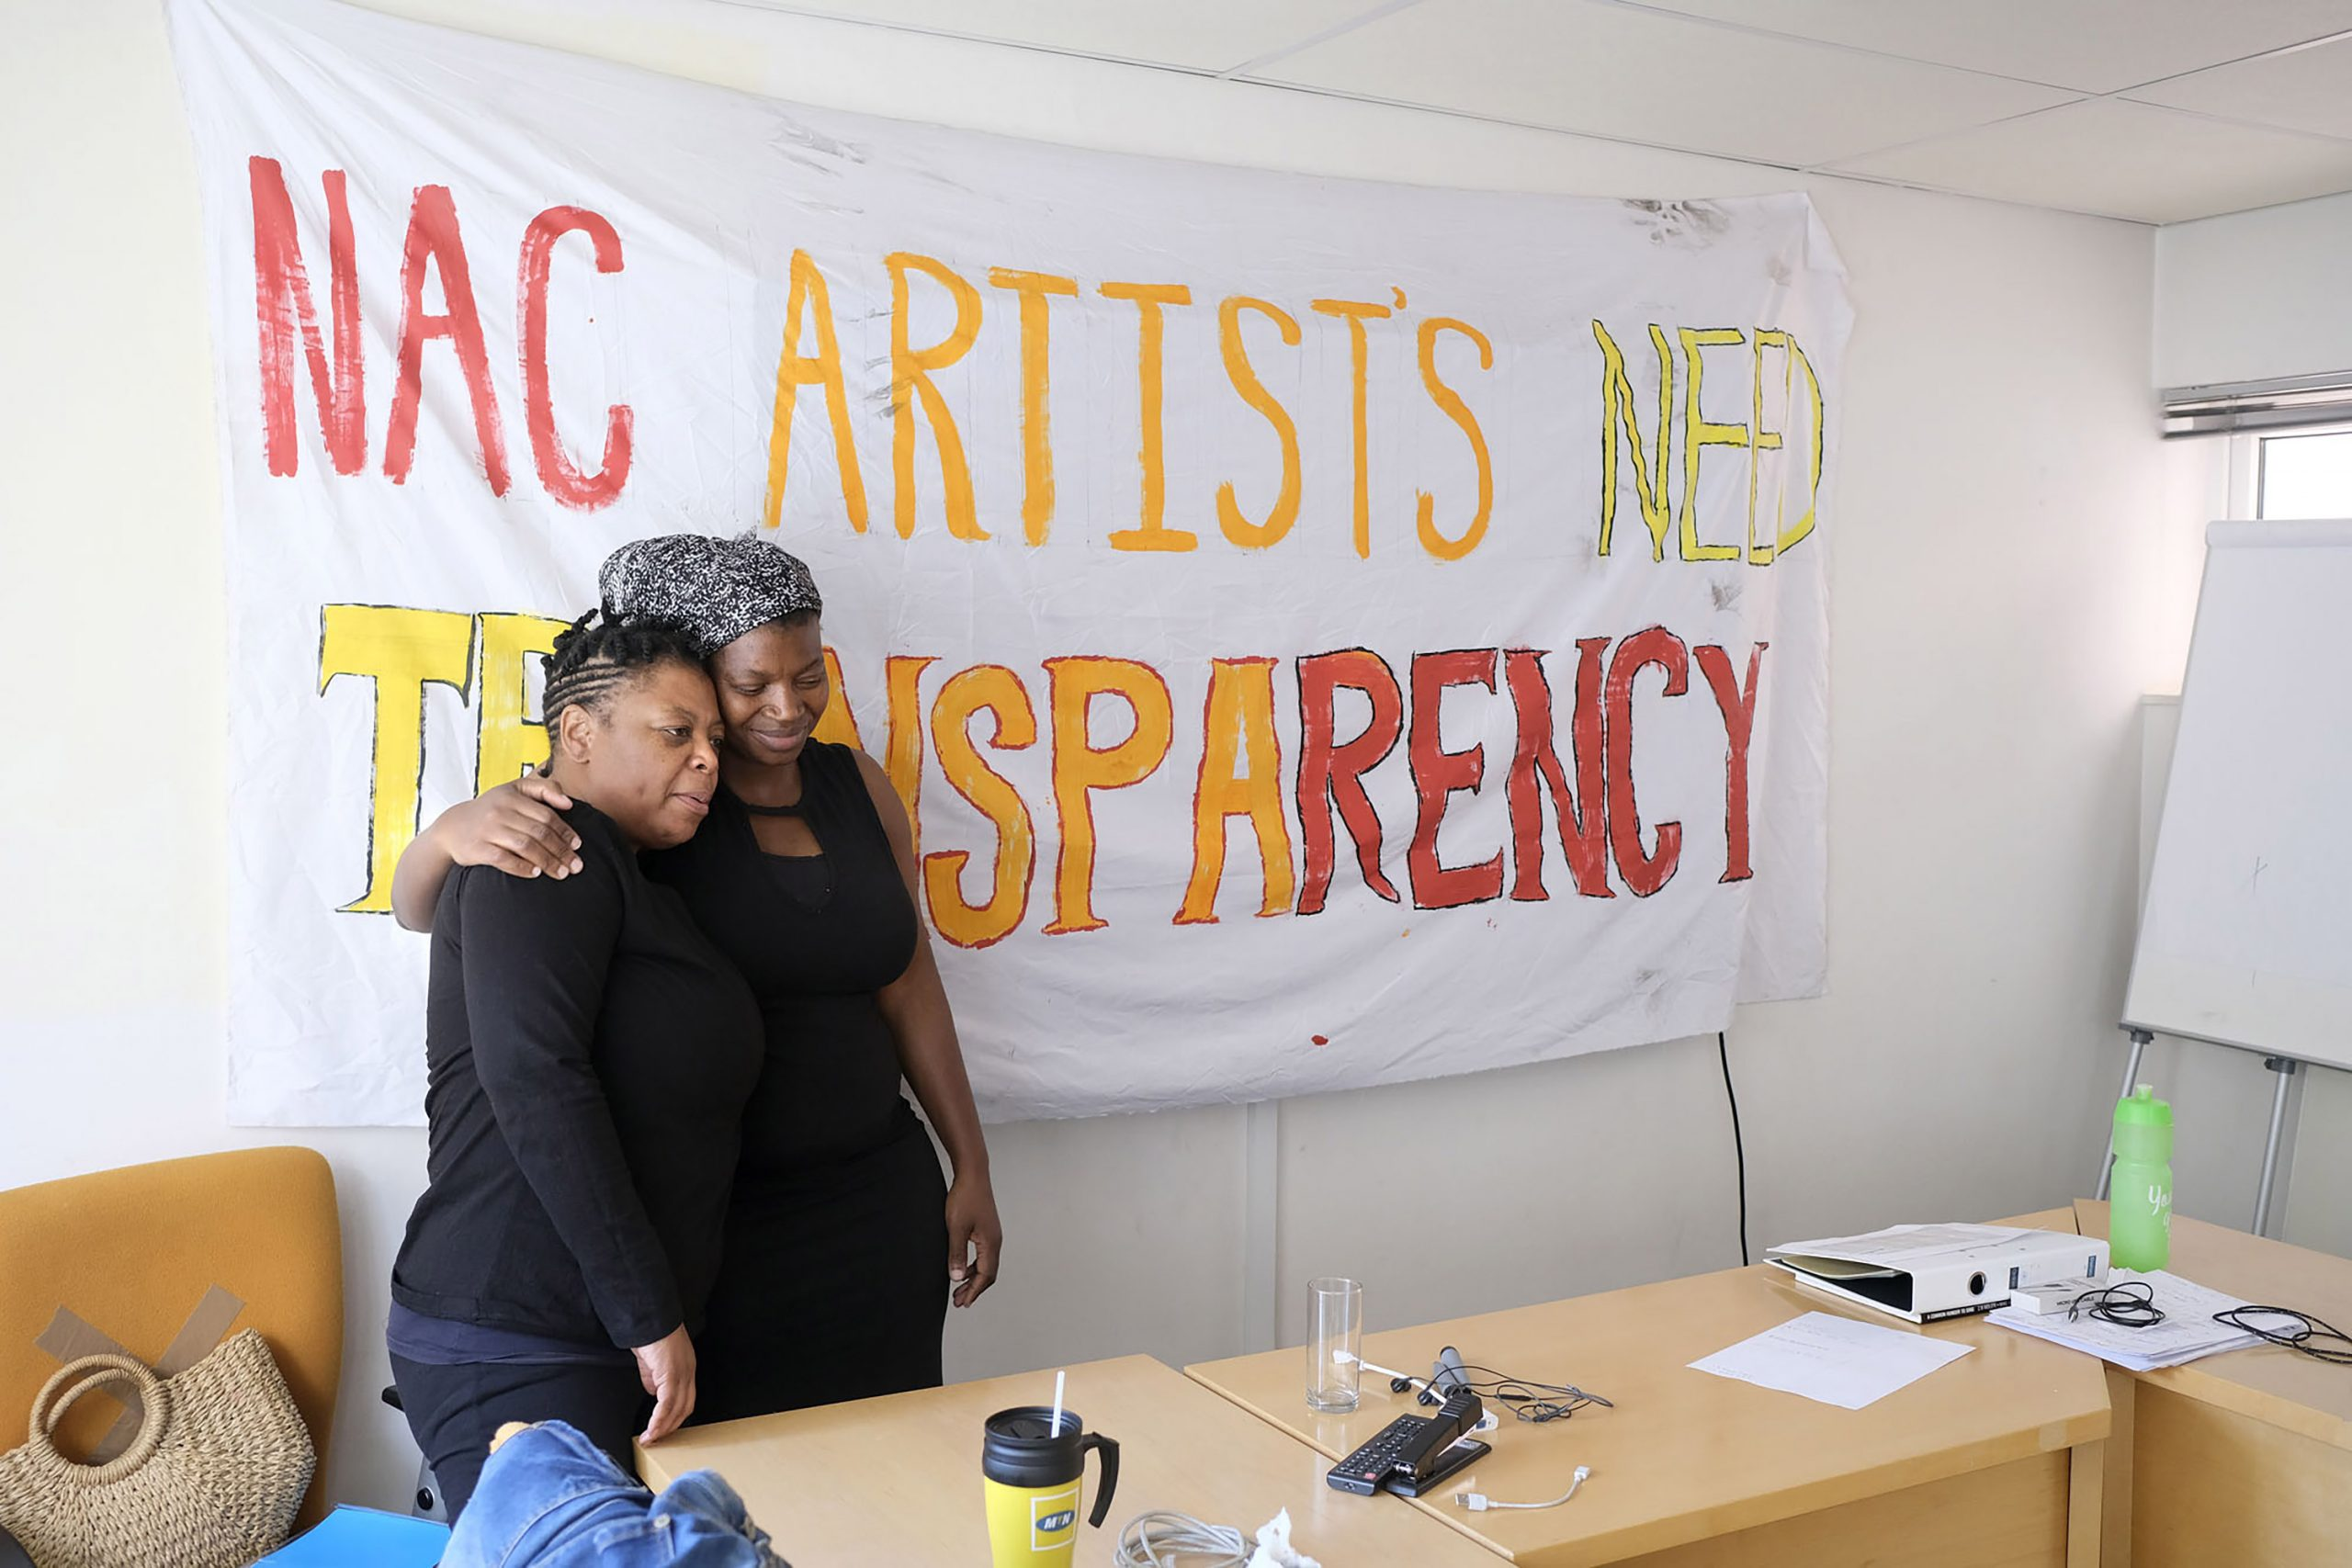 15 March 2021: From left, Sibongile Mngoma gets support from Thoko Hlala in the National Art Council's boardroom, where artists are staging a sit-in to protest the mismanagement of funds. (Photograph by John Hogg)